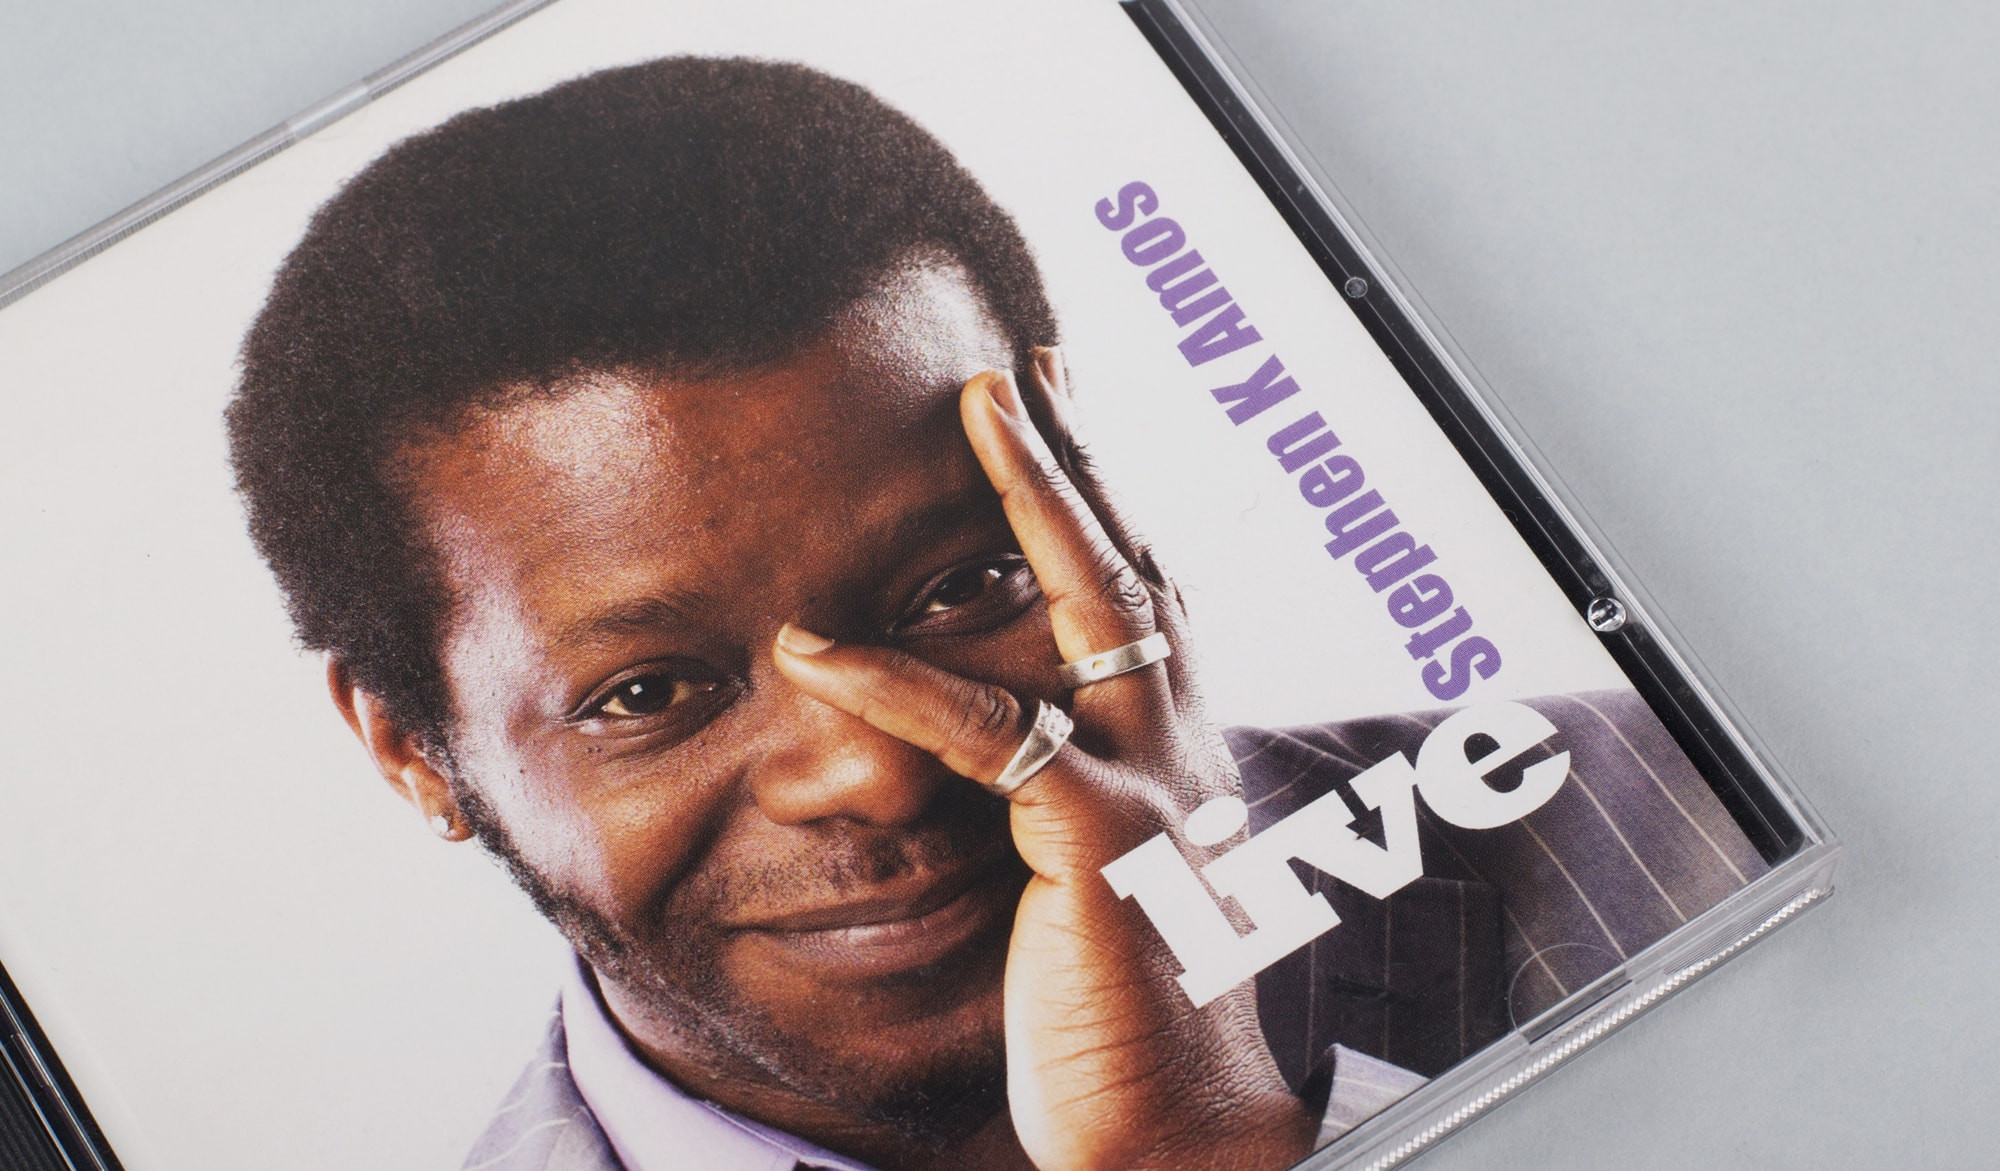 Stephen K Amos - CD front